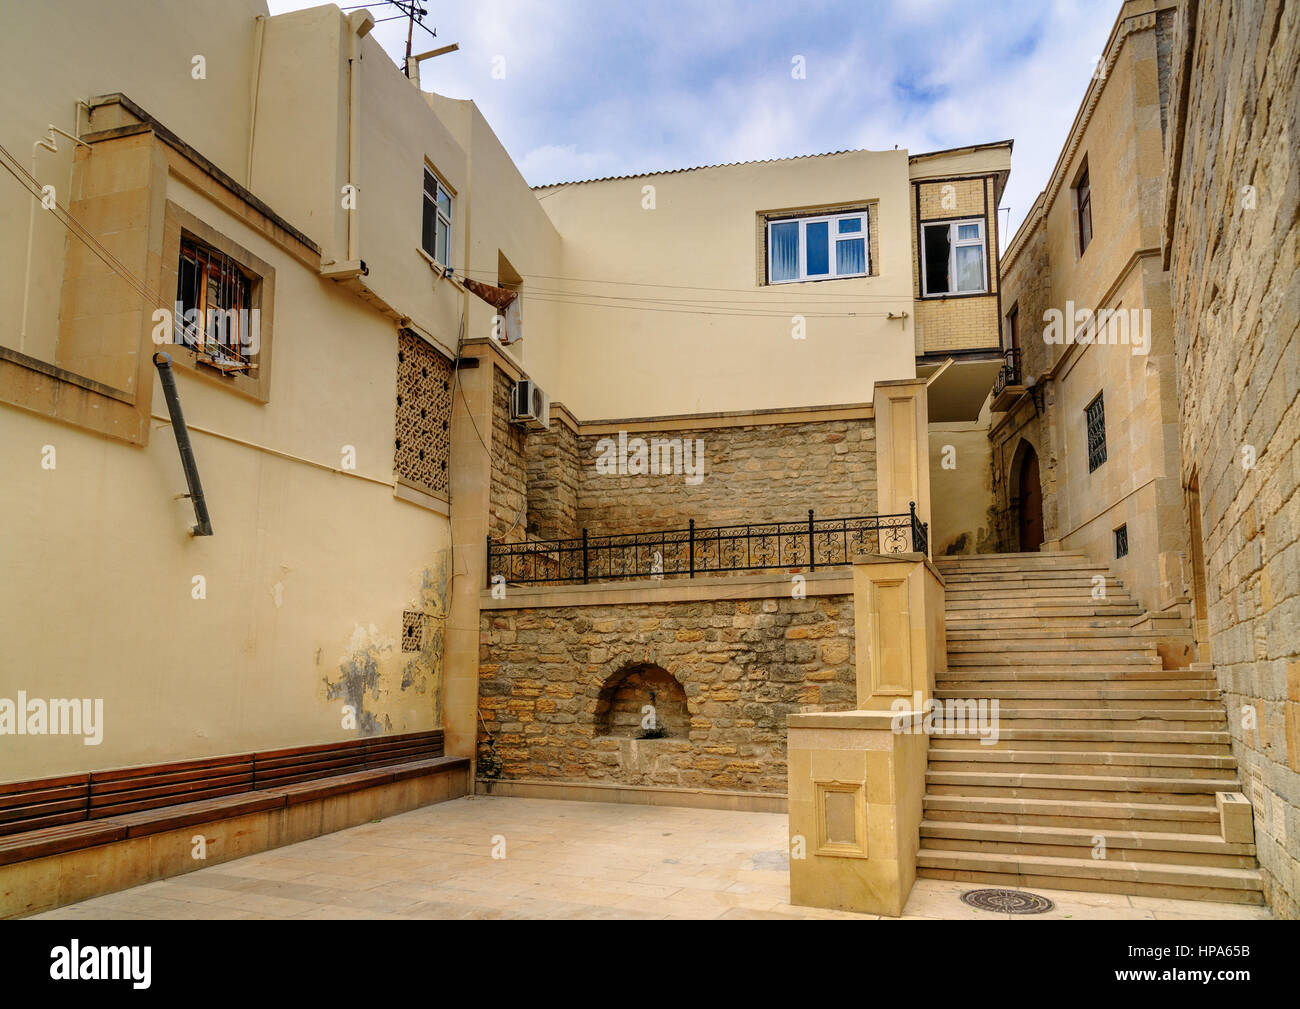 Street in Old city, Icheri Sheher is the historical core of Baku. Azerbaijan. World Heritage Site by UNESCO Stock Photo